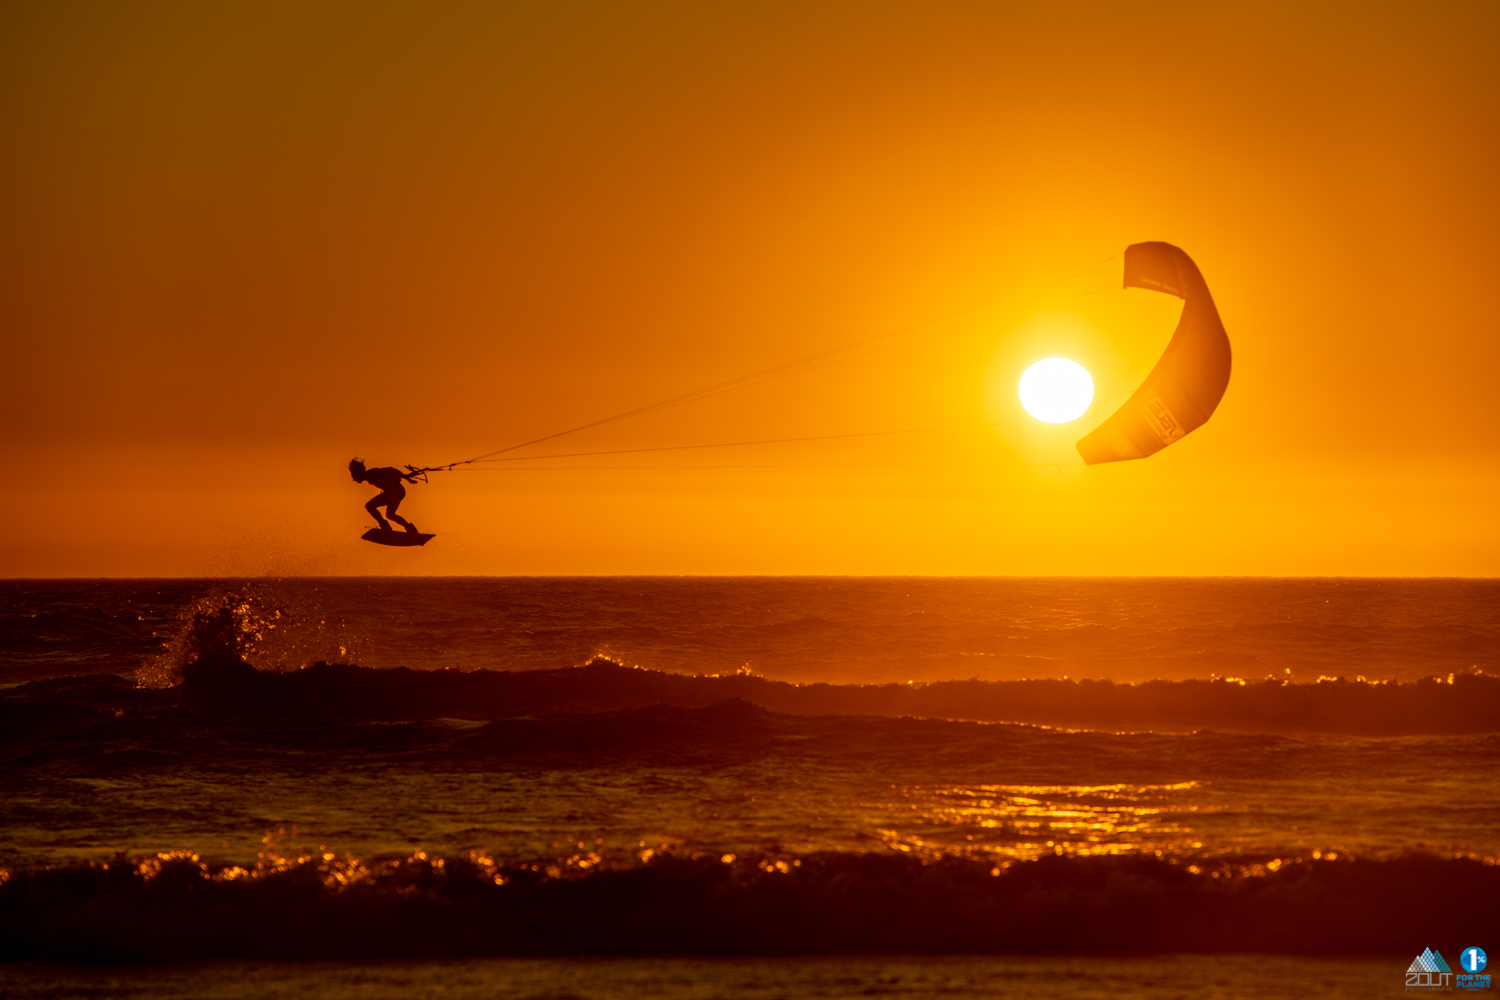 sunset kitesurf photo